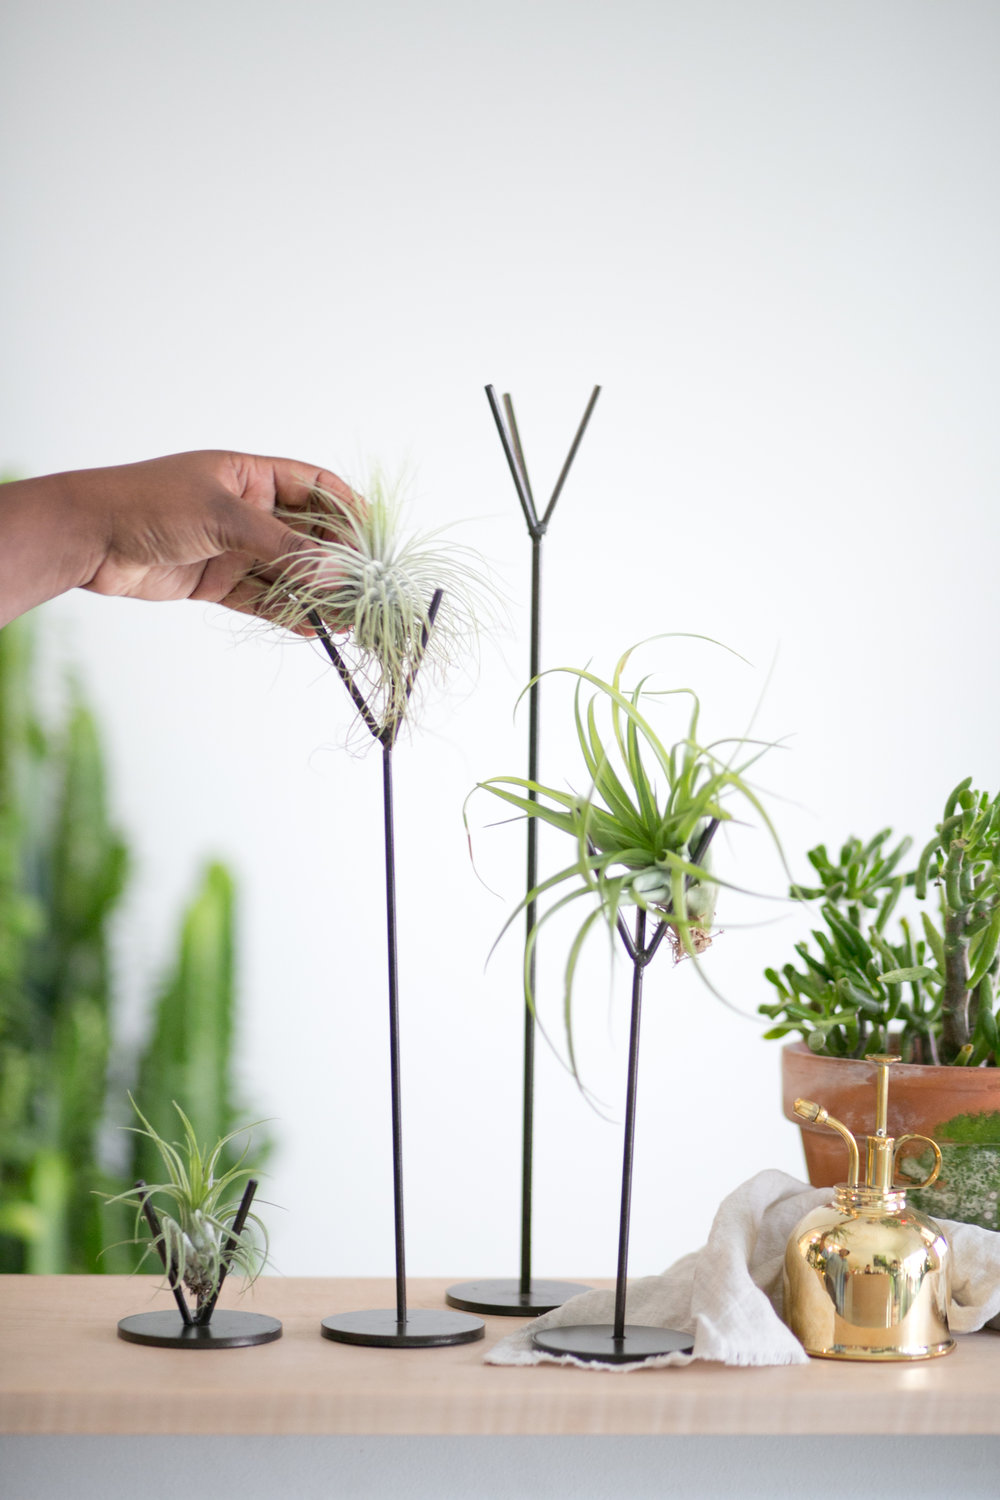 Air plants are great for fall and winter because they do not require a lot of natural light. You can also get really creative with how to display them!